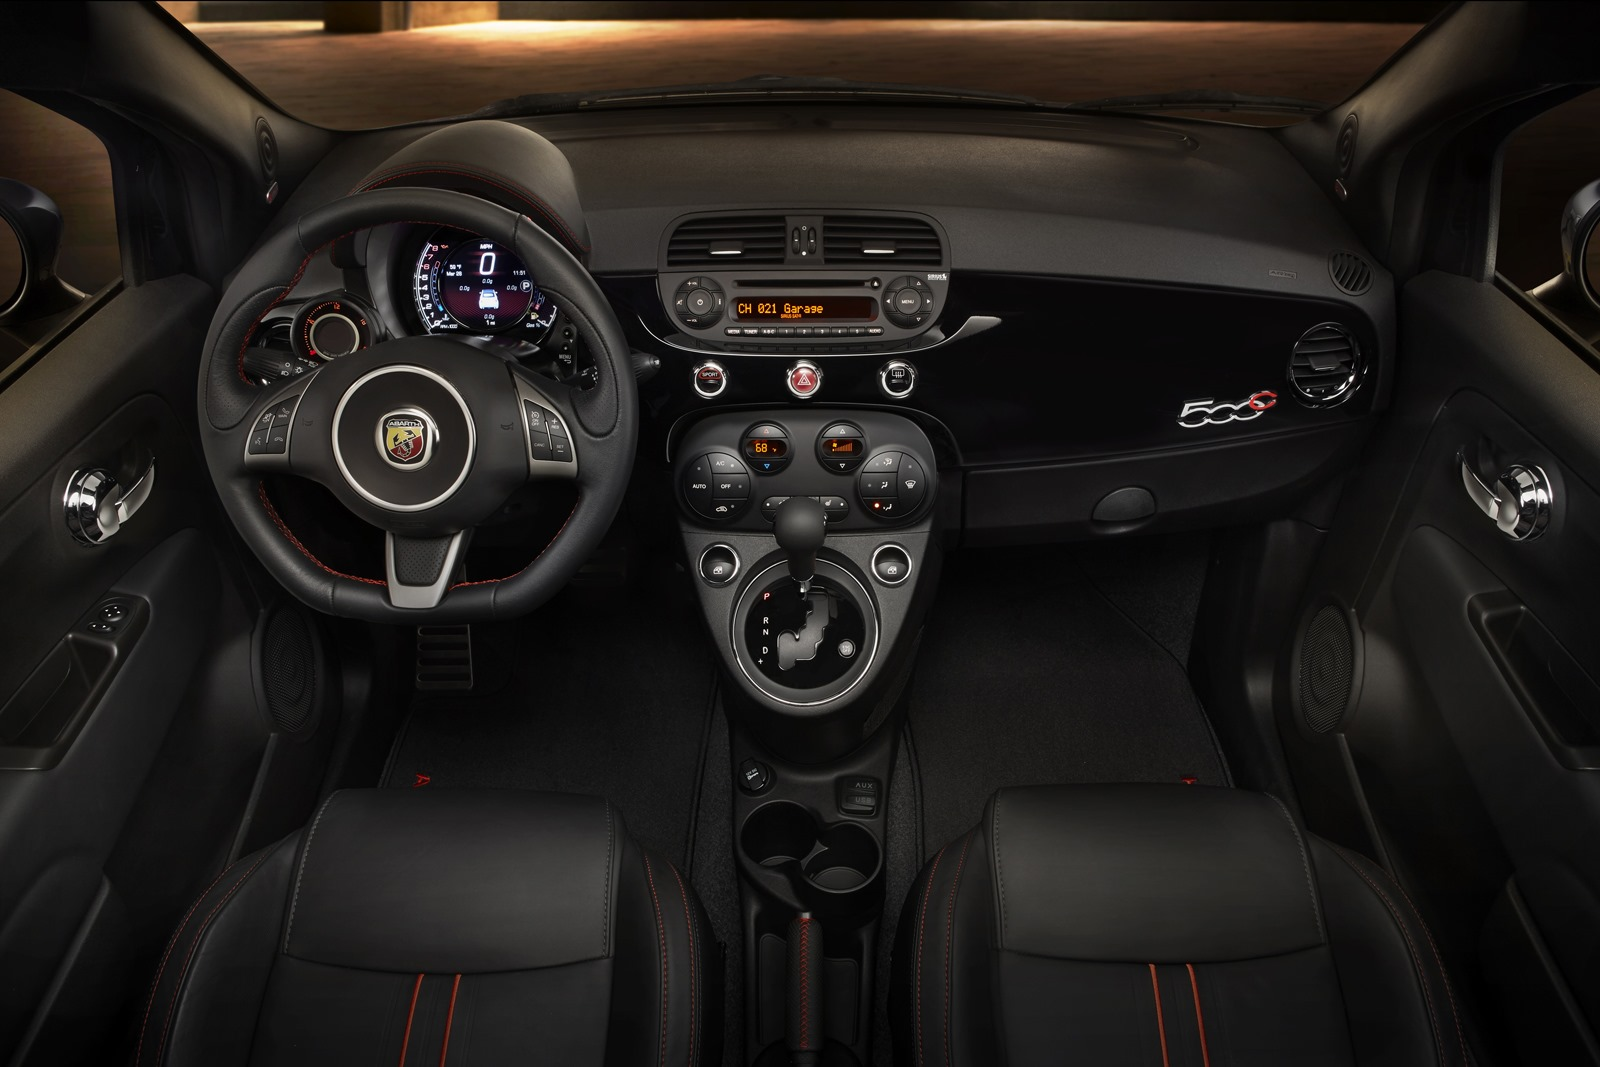 adorable-design-of-the-black-seats-added-with-black-dash-as-the-fiat-500x-2015-interior-ideas